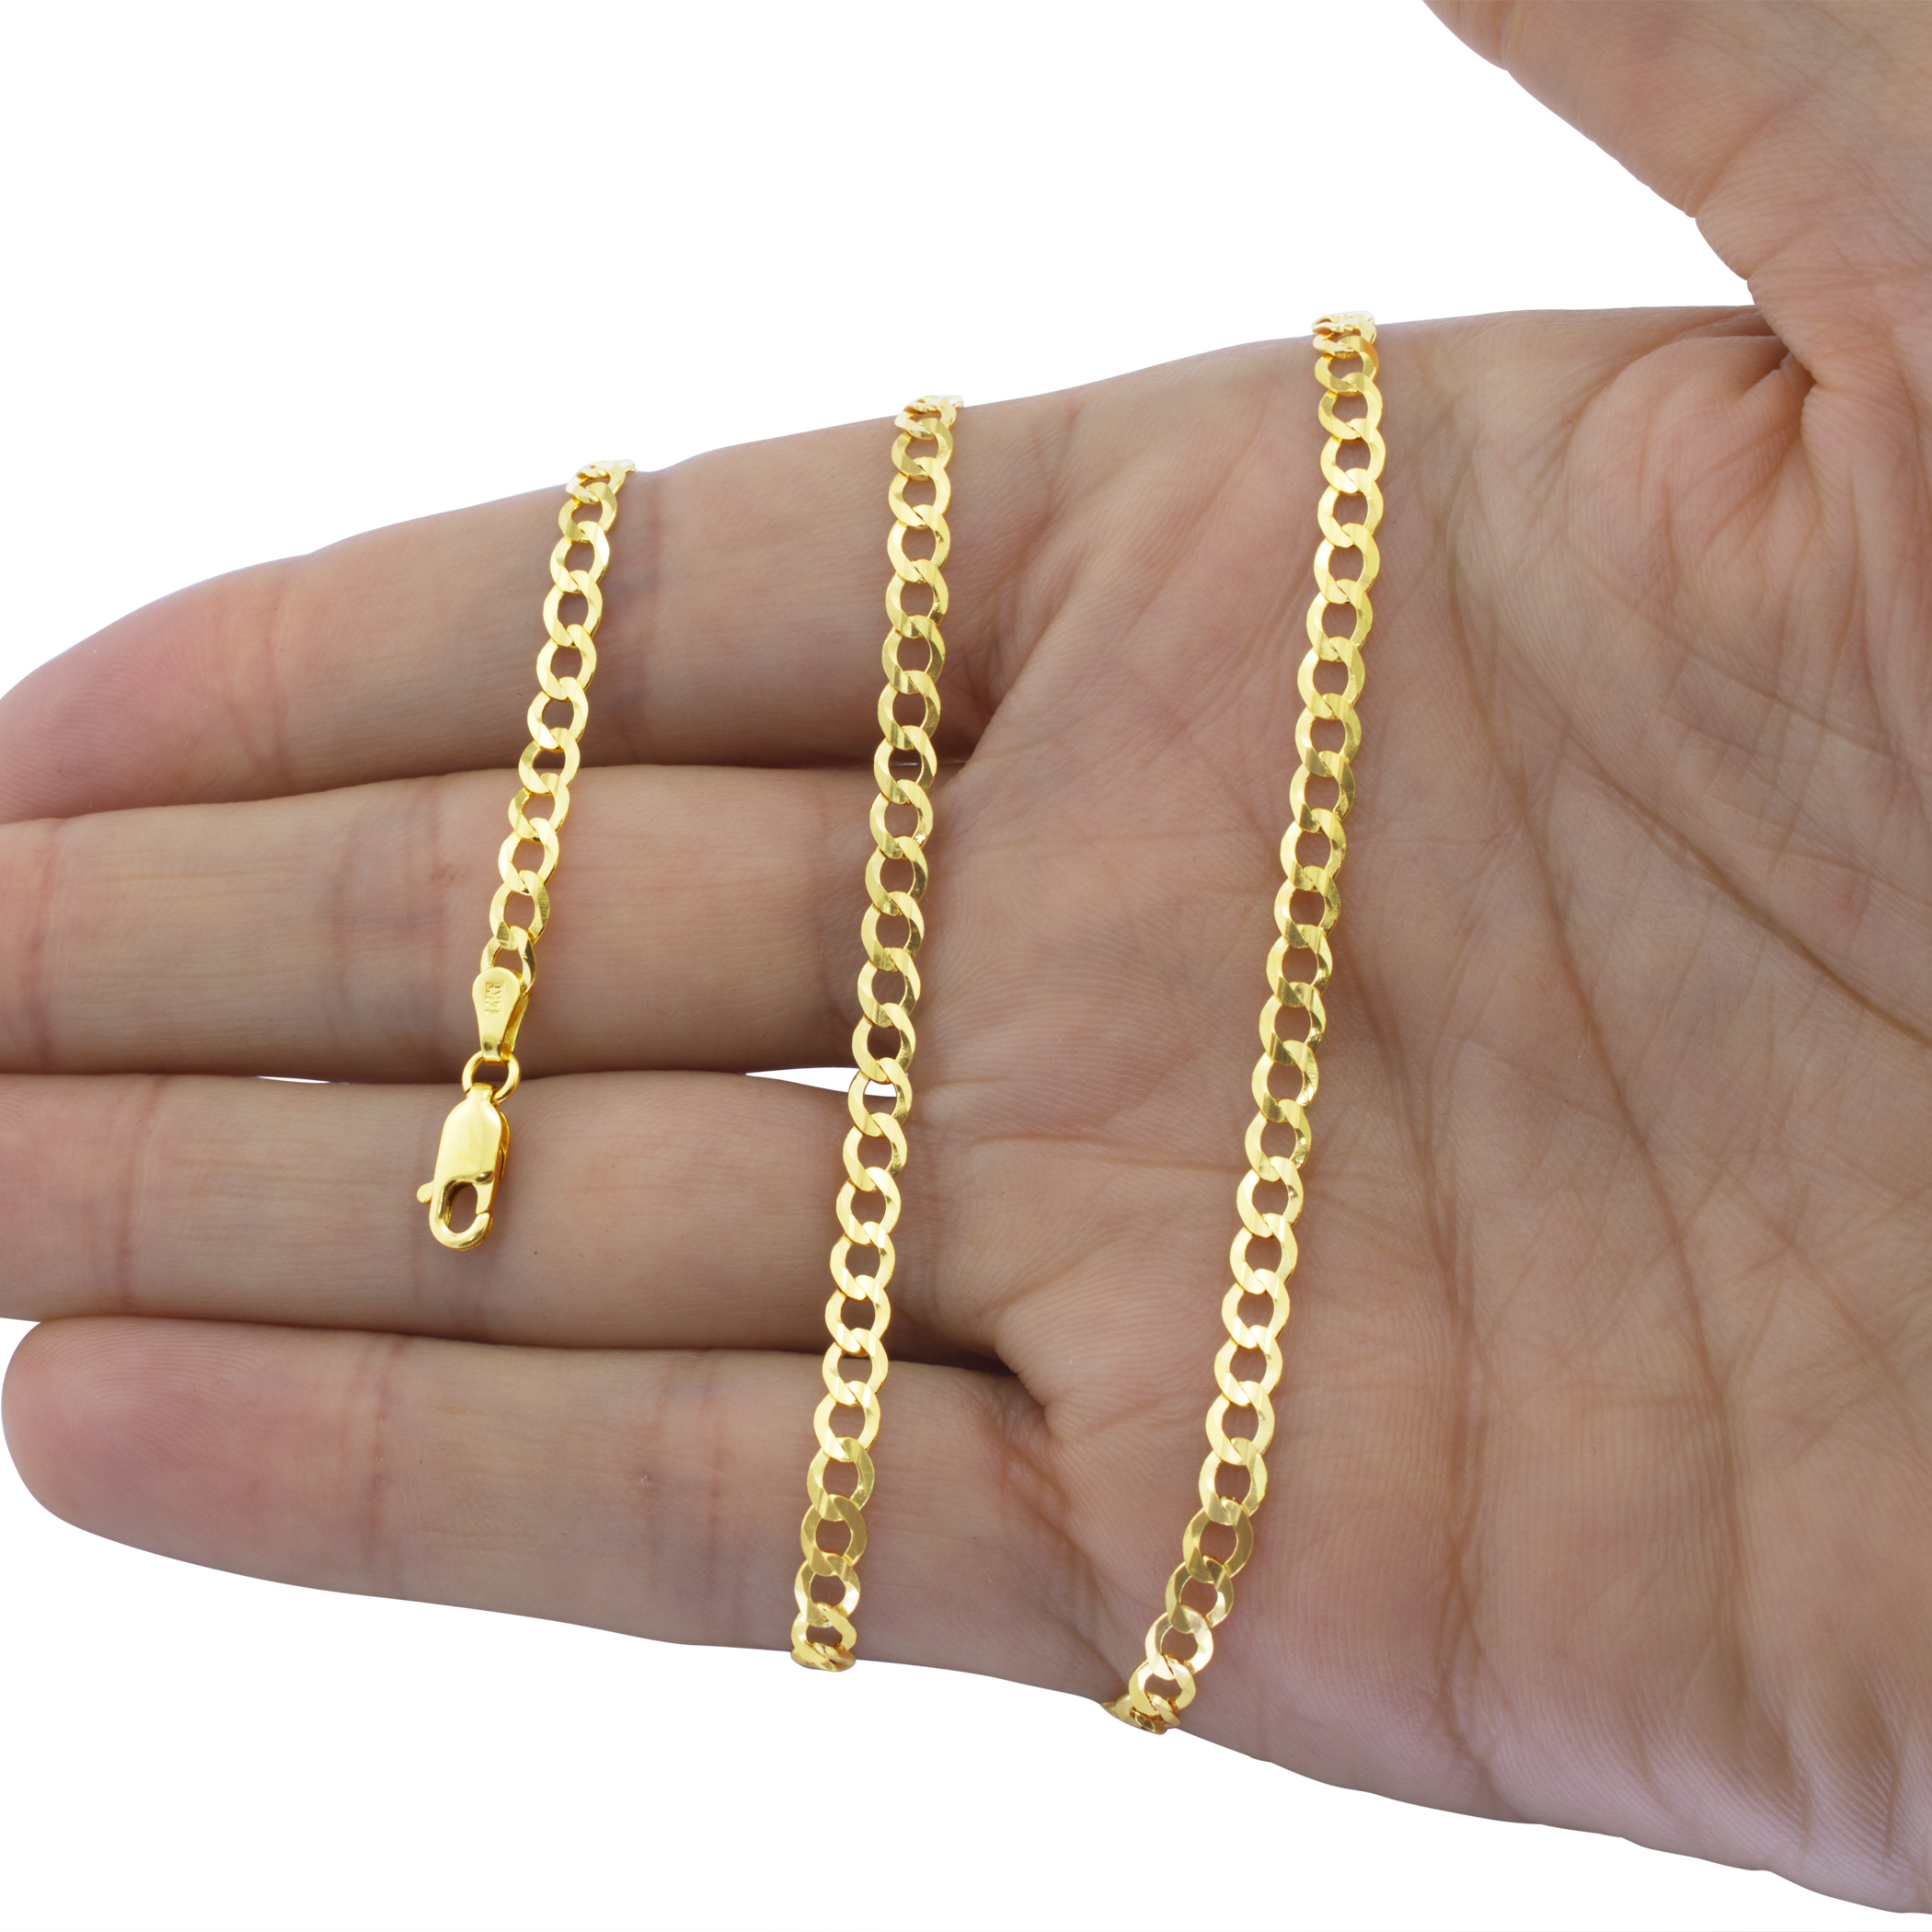 14K-Solid-Yellow-Gold-4mm-Cuban-Curb-Chain-Link-Bracelet-Lobster-Clasp-7-034-8-034-9-034 thumbnail 18